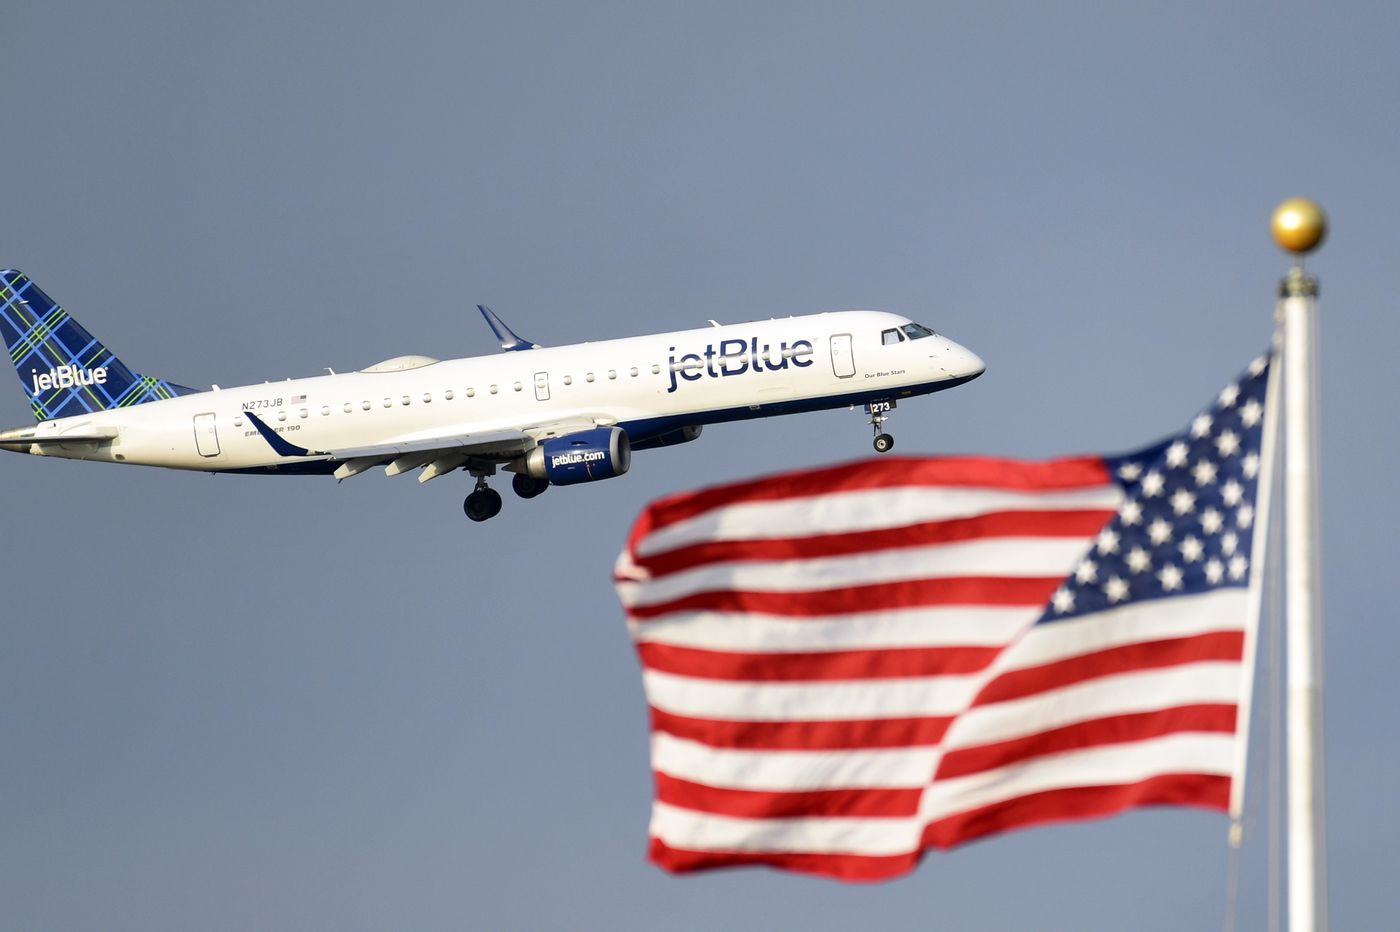 JetBlue to offer flights to London from N.Y. and Boston